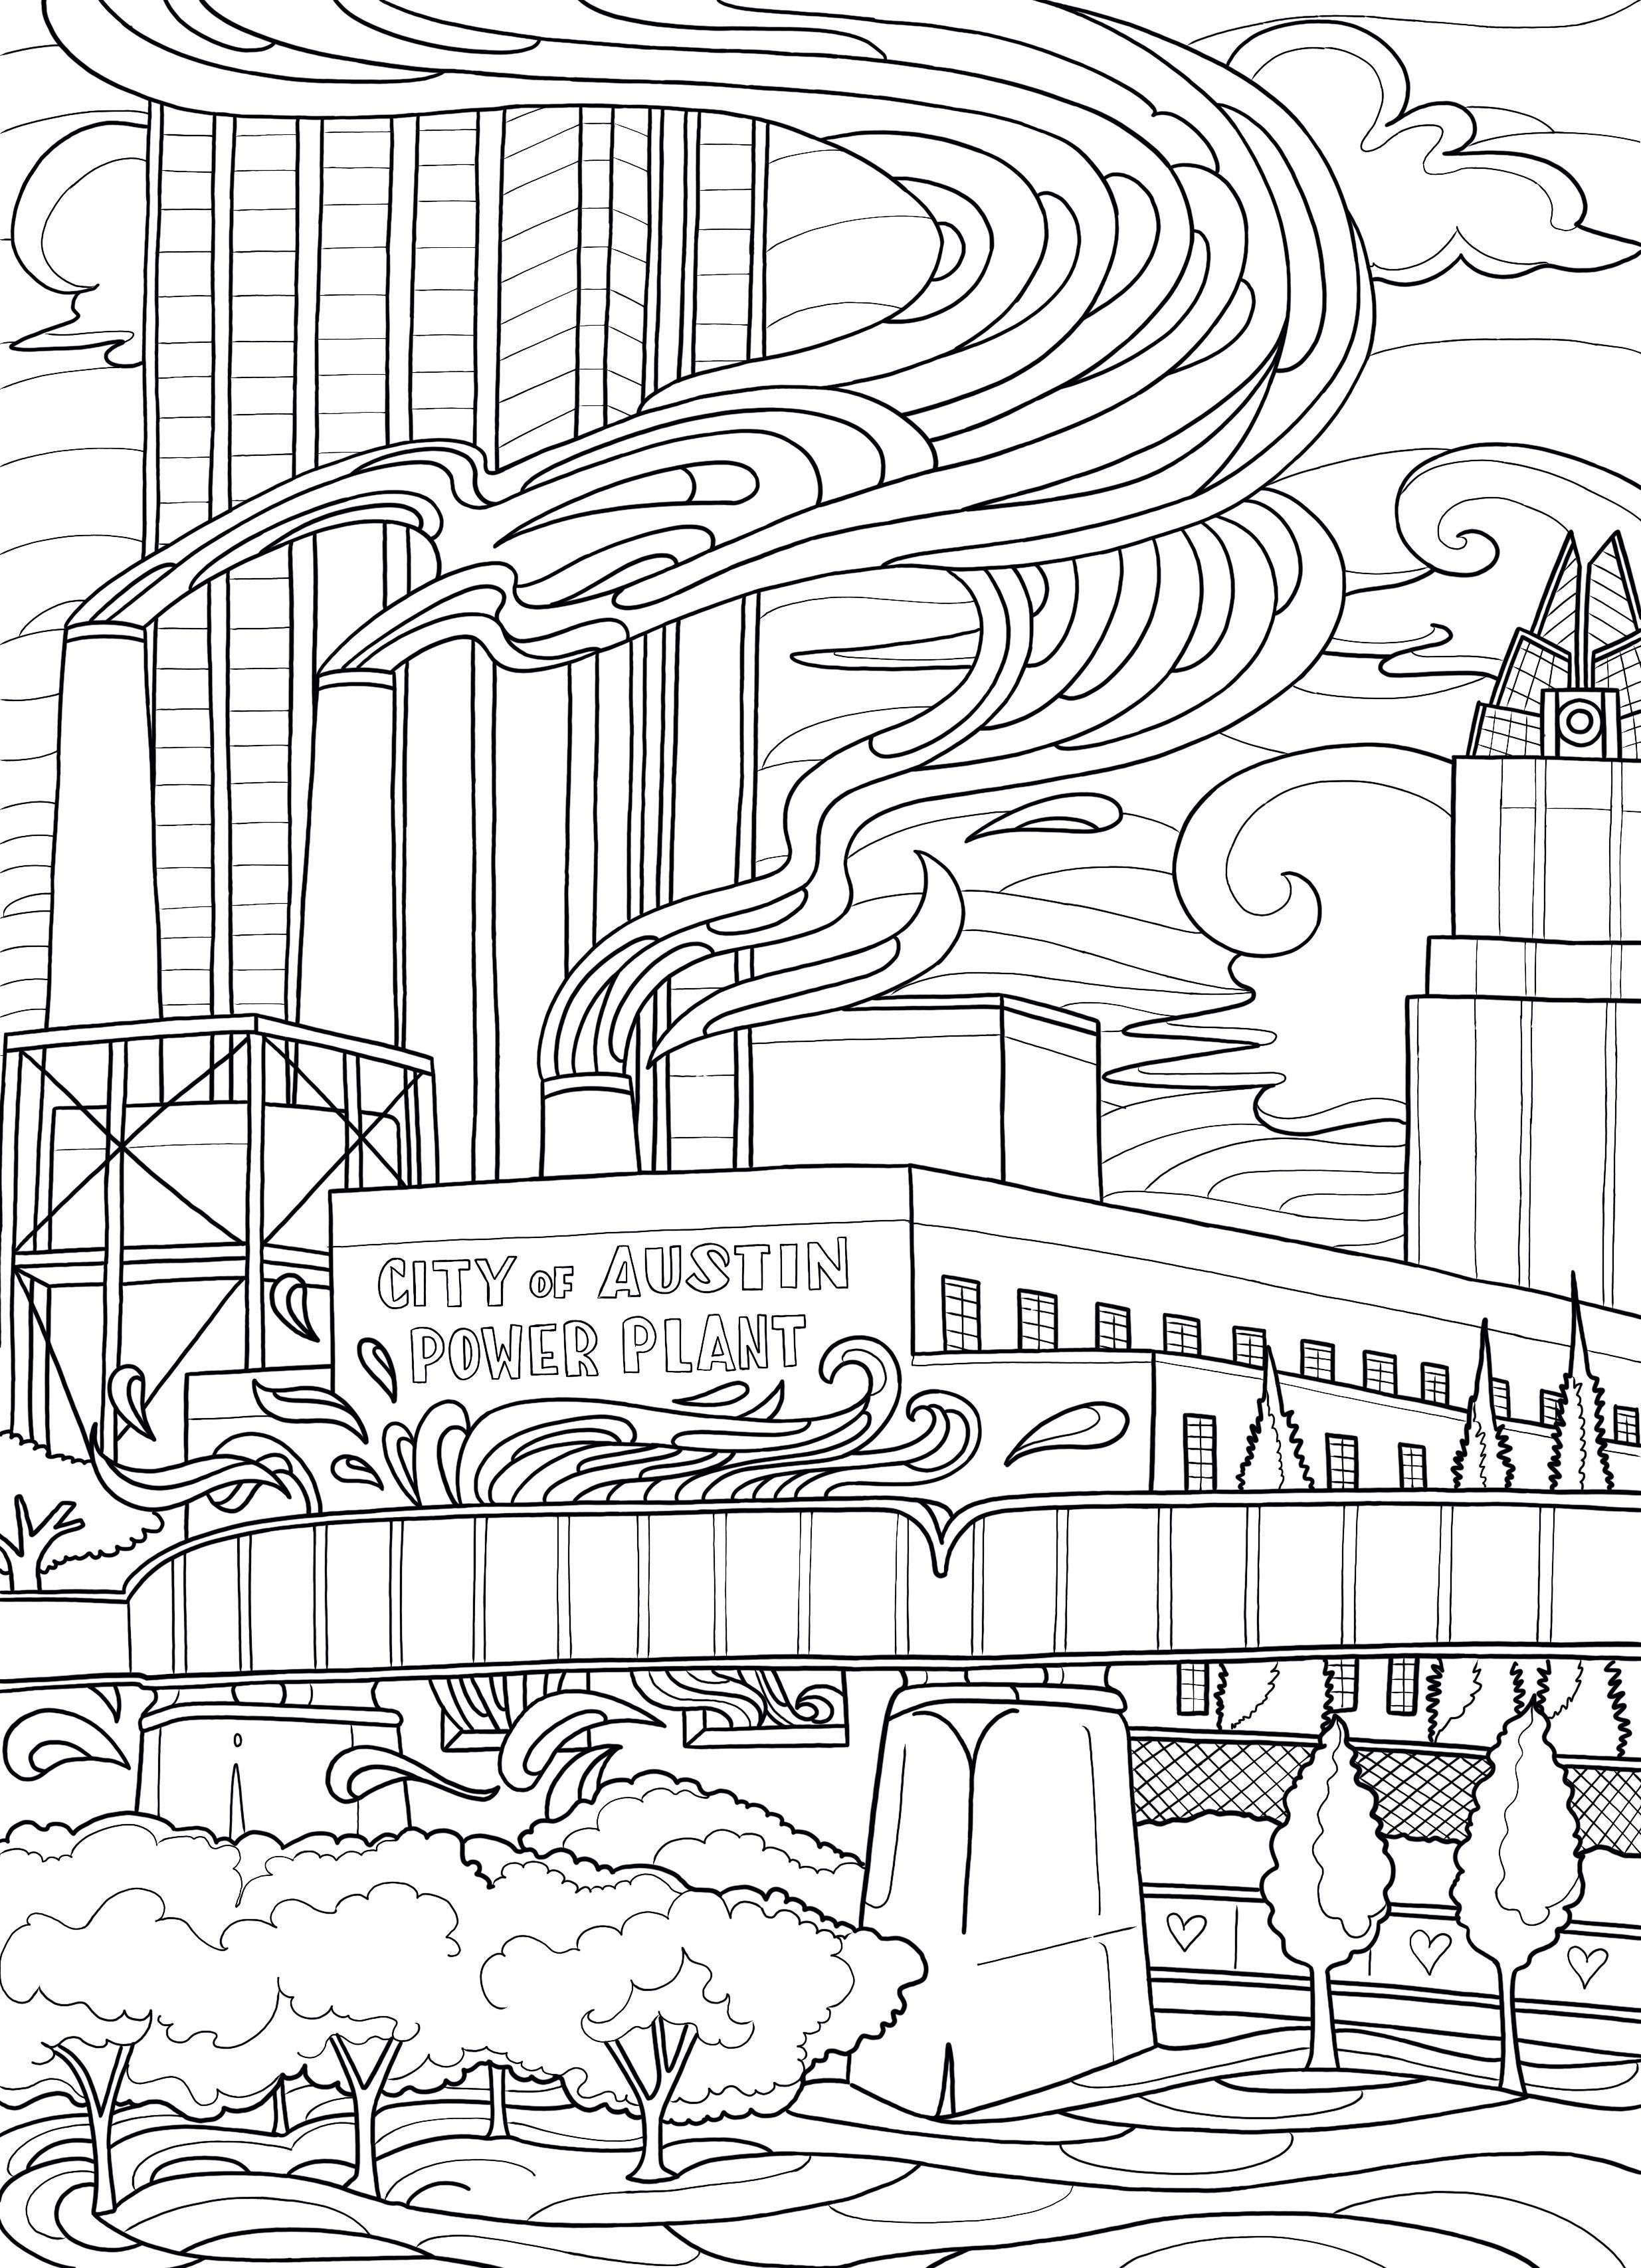 Power Plant Coloring Page